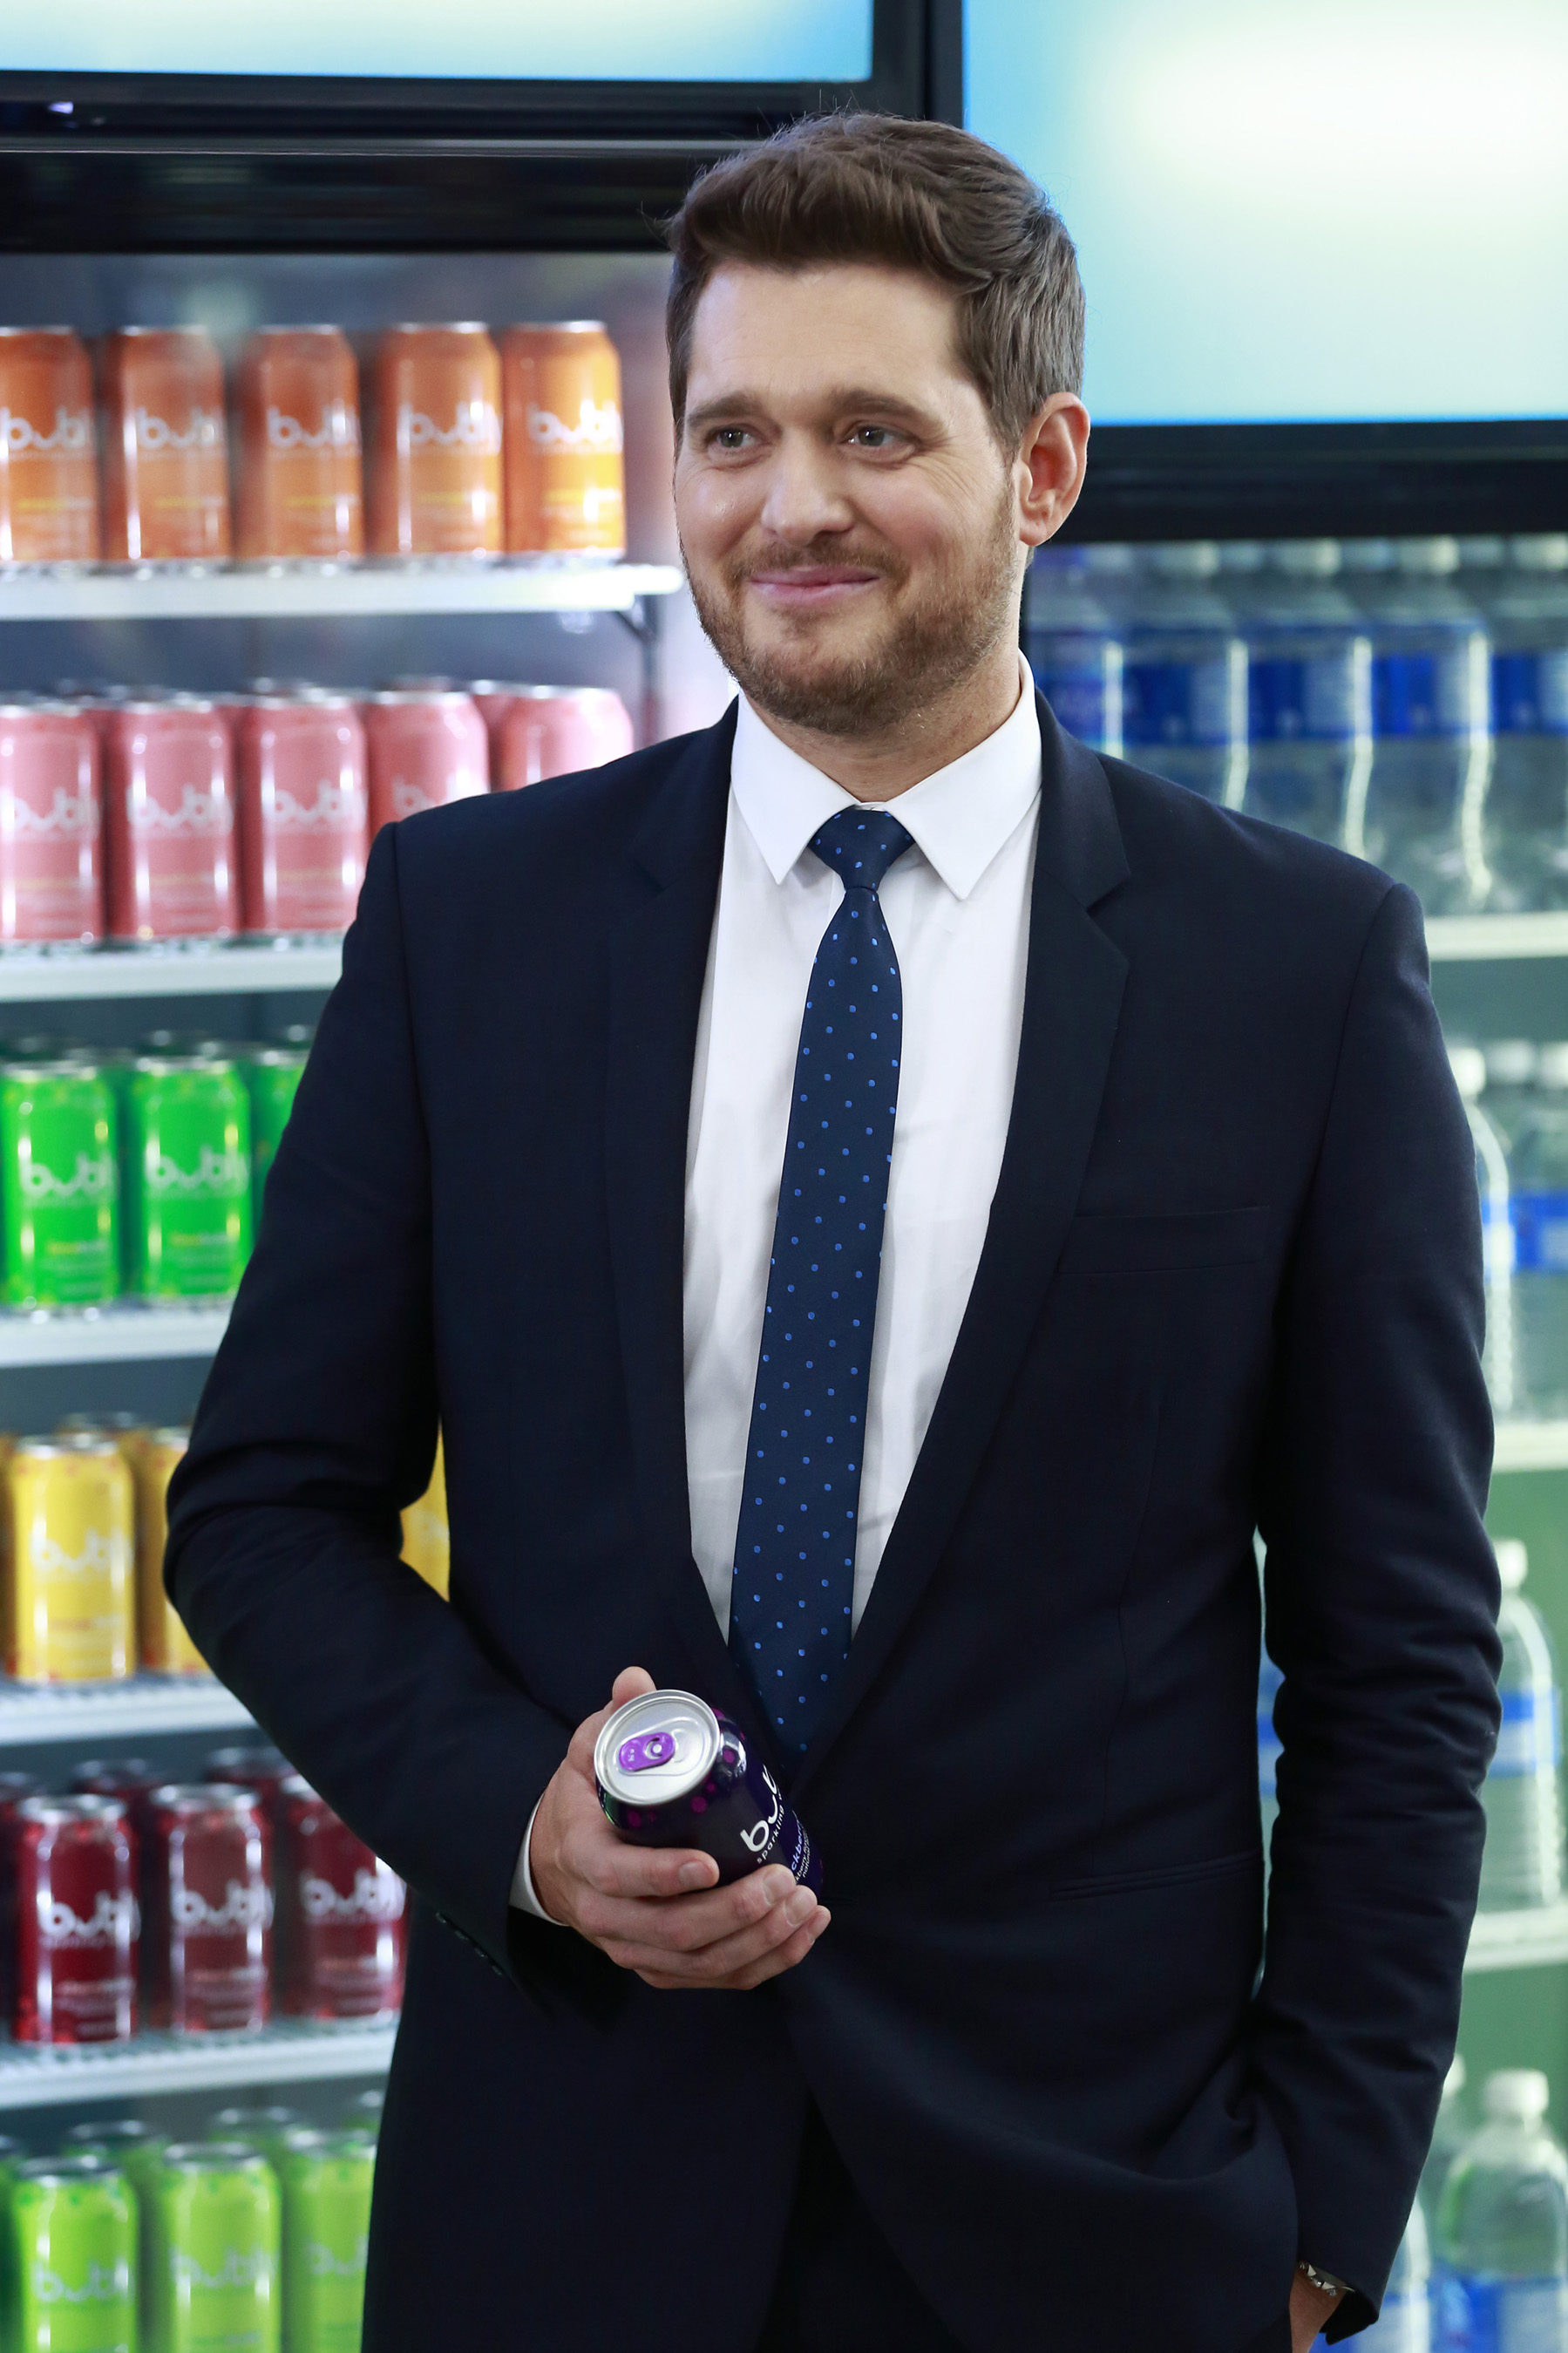 Michael Bublé makes Super Bowl advertisement debut with bubbly